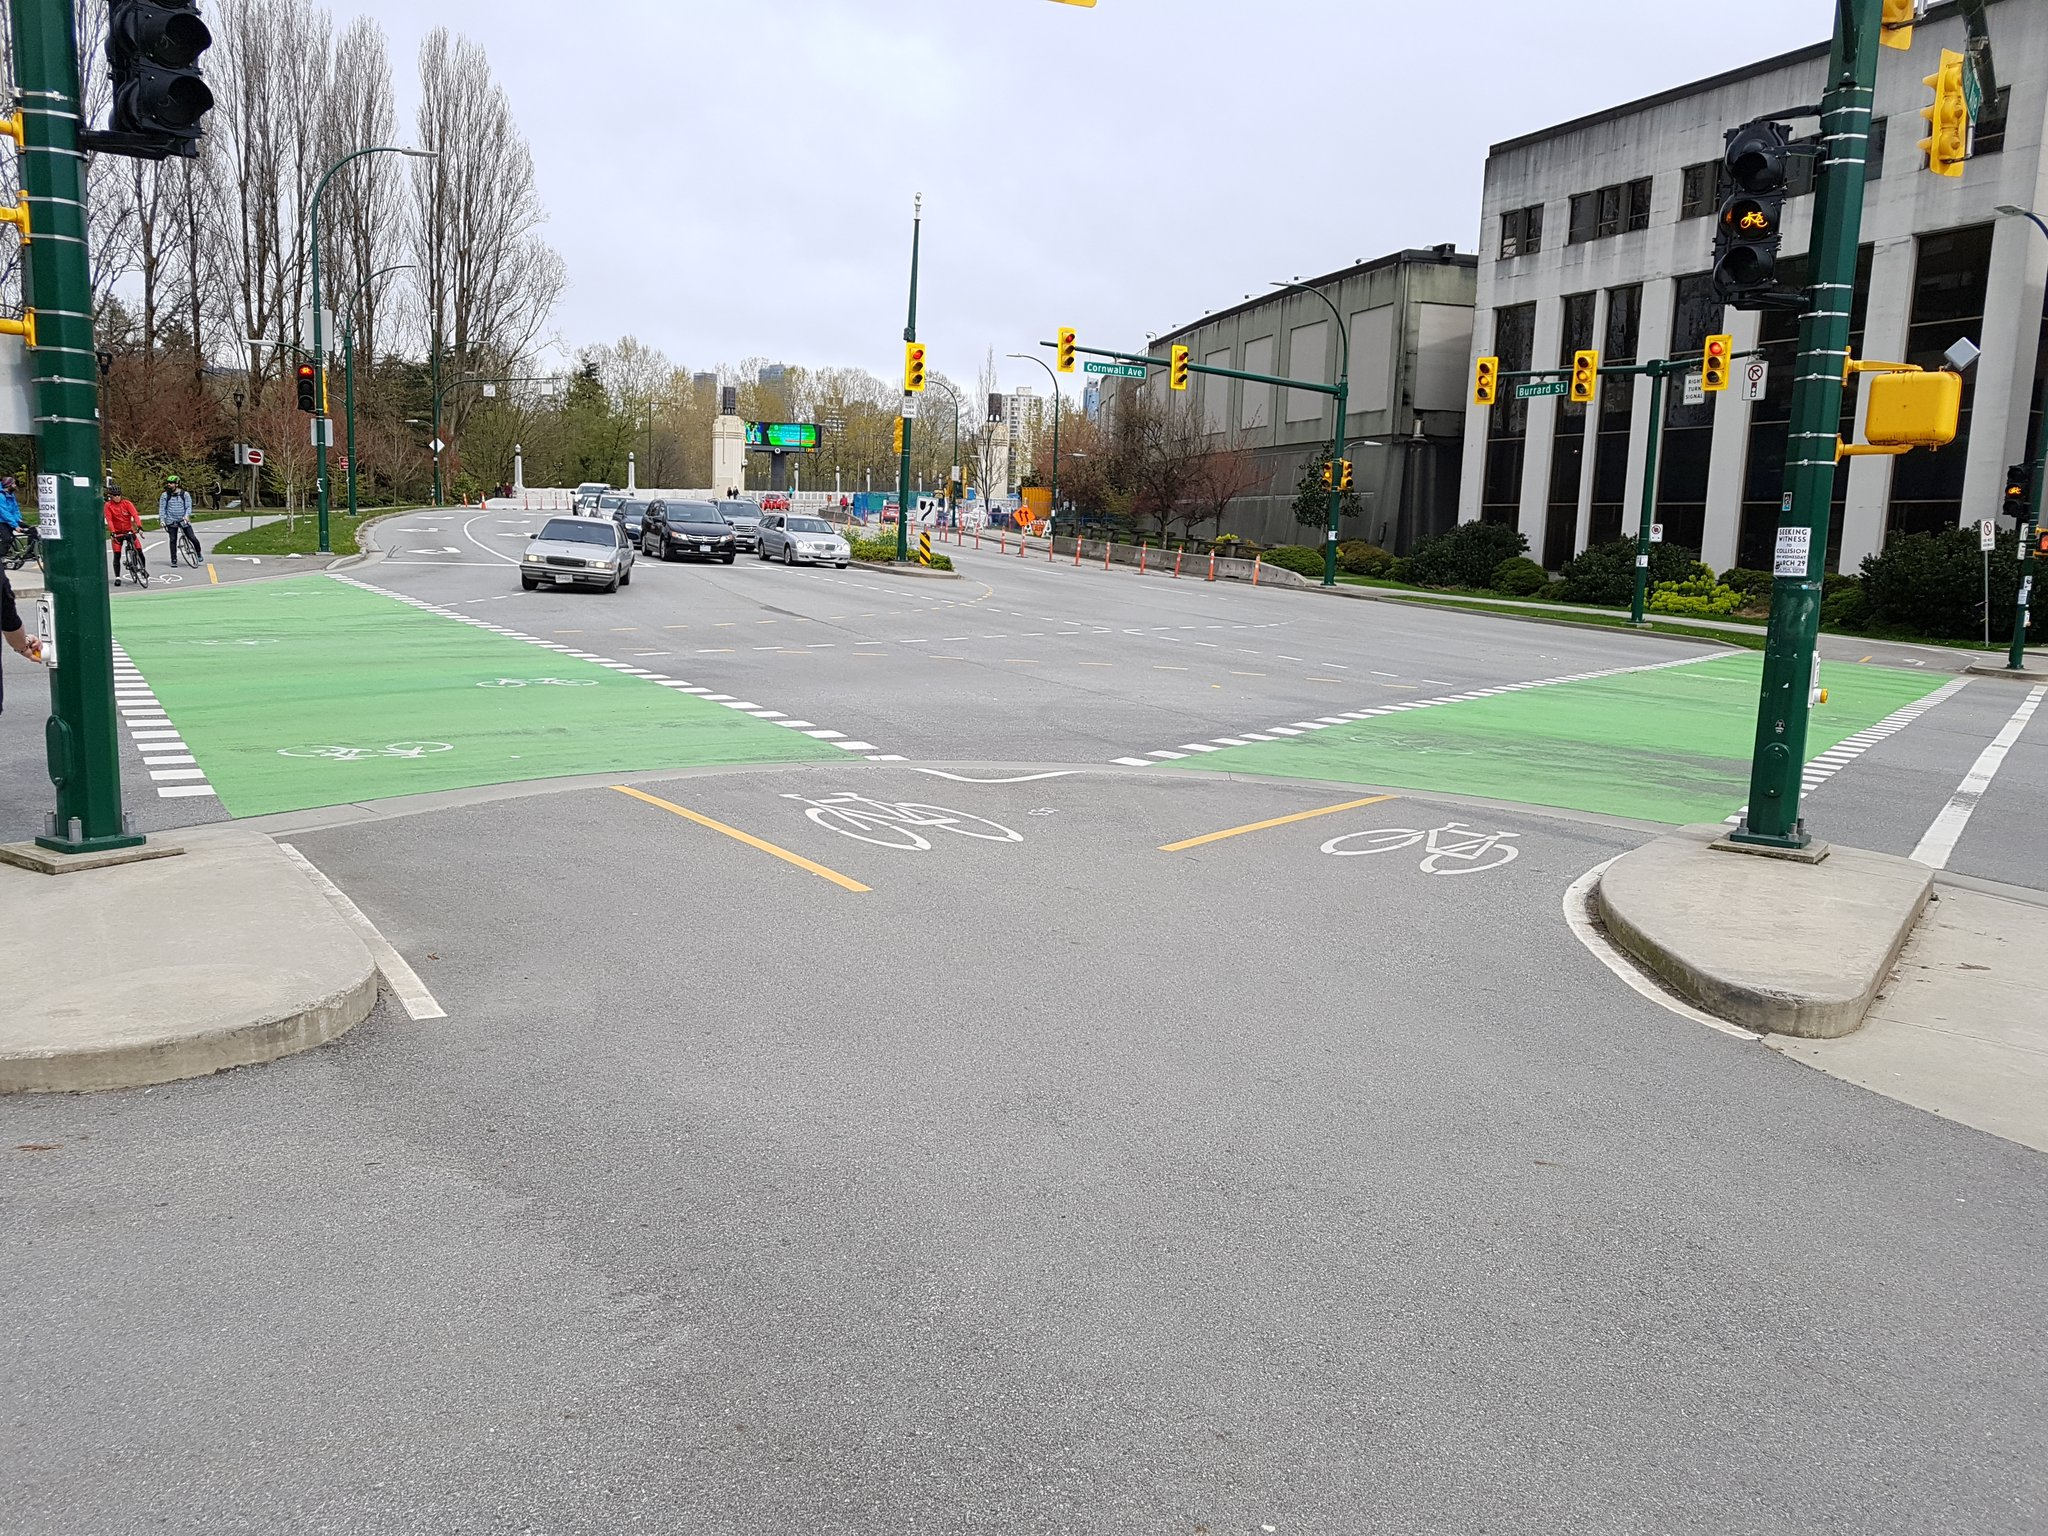 Ar south end, one of the only fully-protected intersections in North America, allowing even left-turns wo interacting with cars #yyjbike https://t.co/izobbasVvh